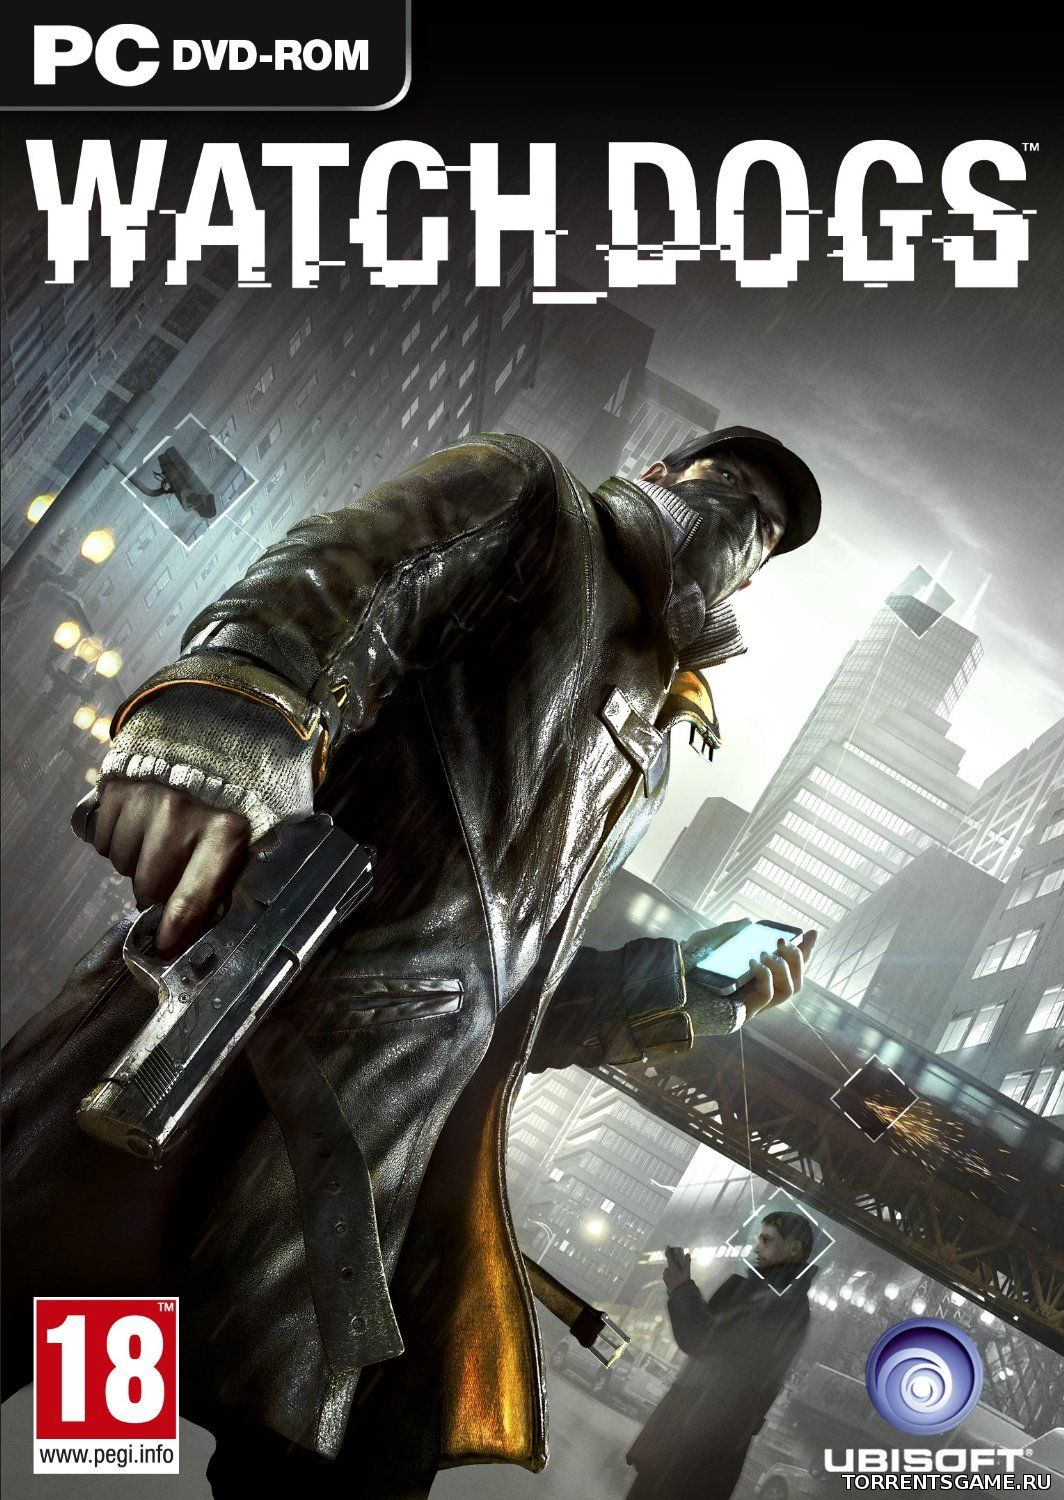 http://torrentsgame.ru/load/games/action/watch_dogs/2-1-0-67